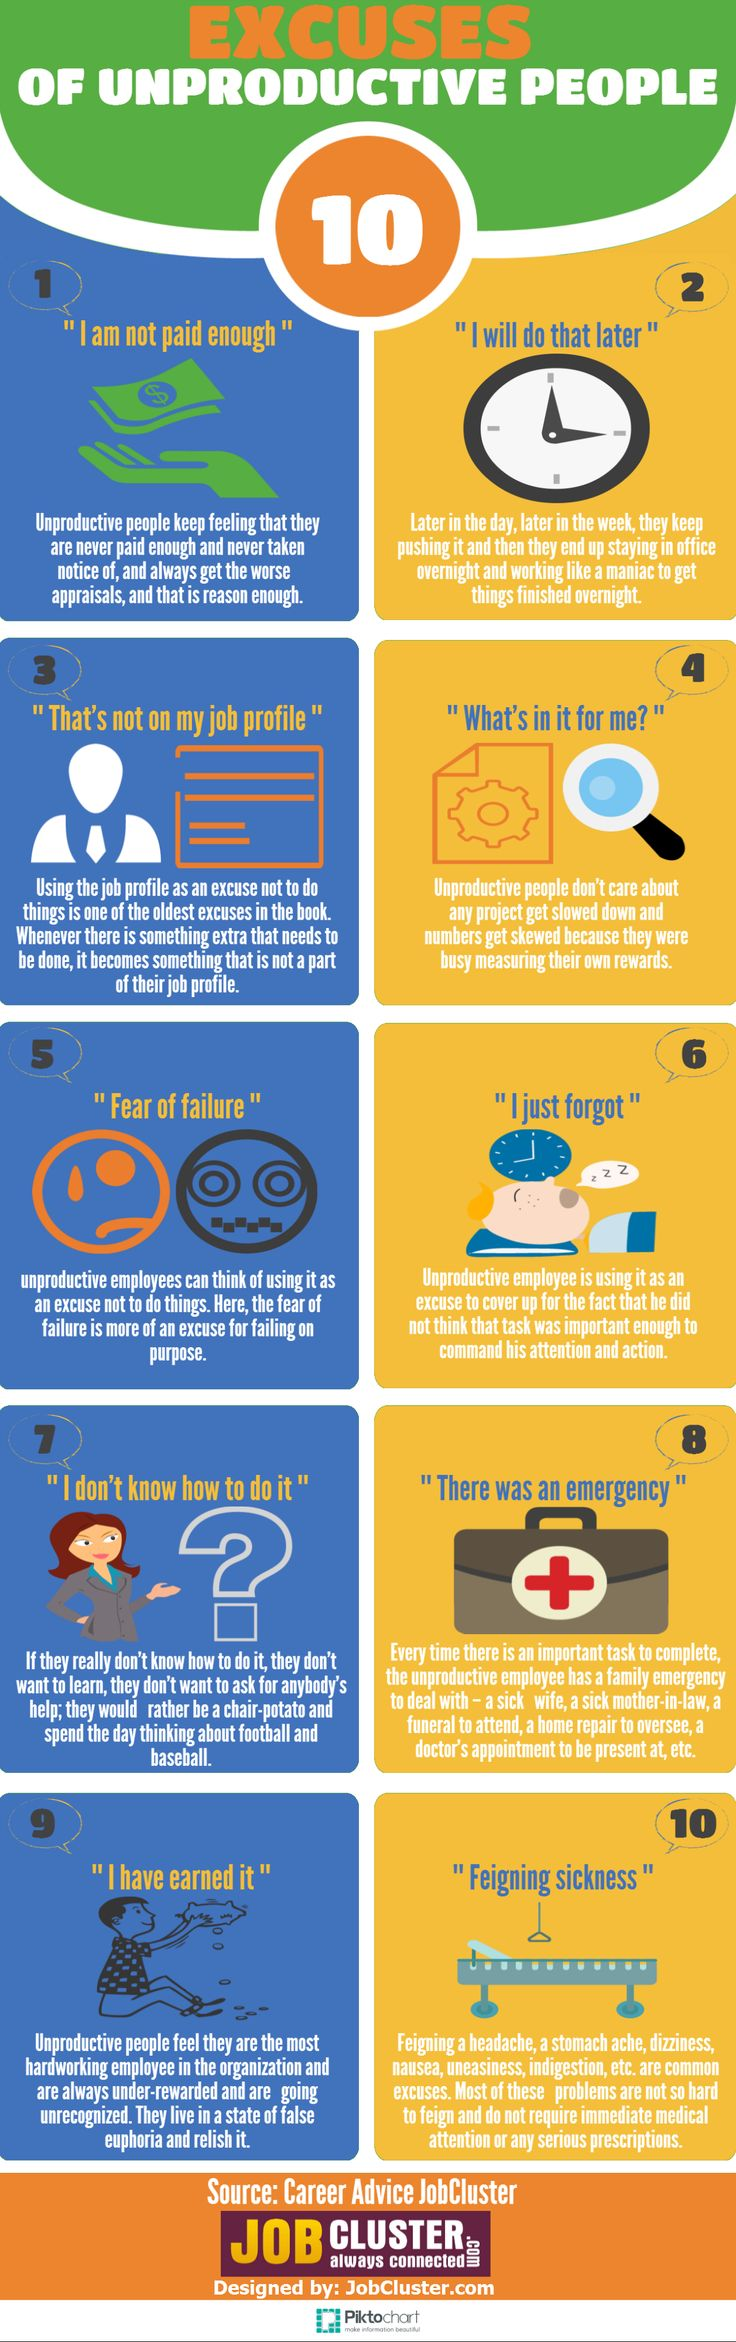 10 Excuses of unproductive people-Infographic